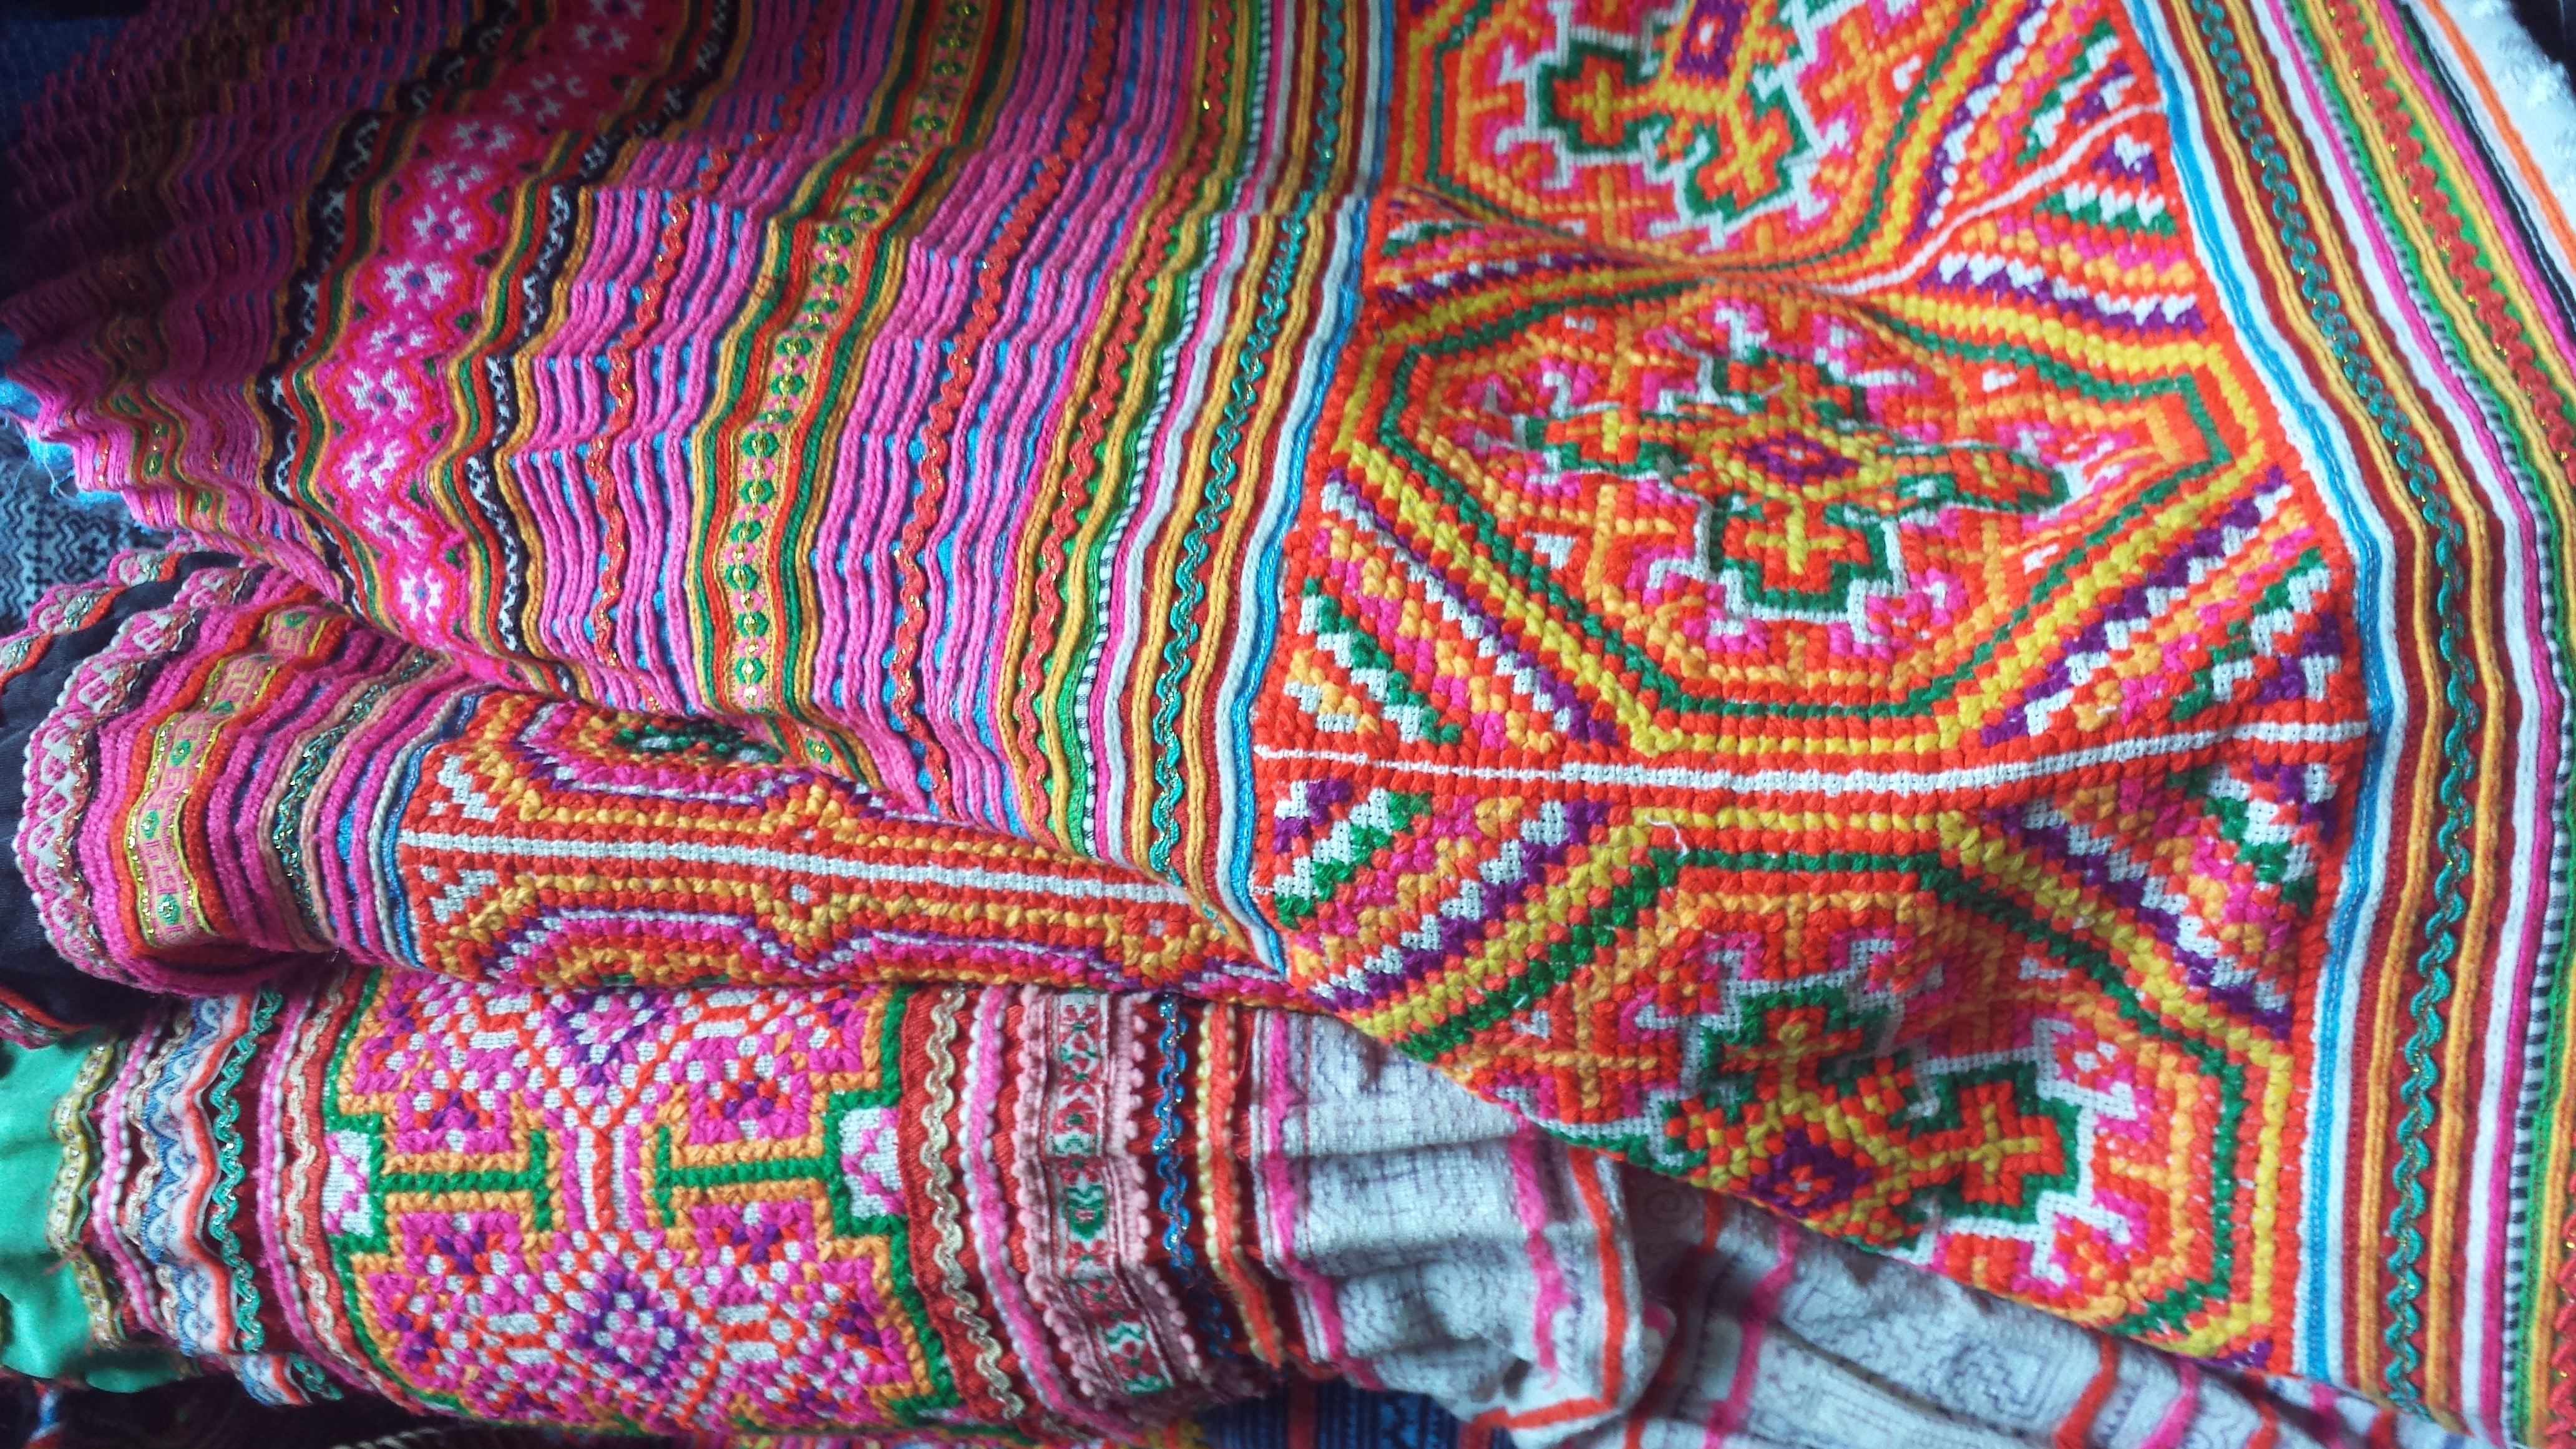 HMONG HILL TRIBE TEXTILES